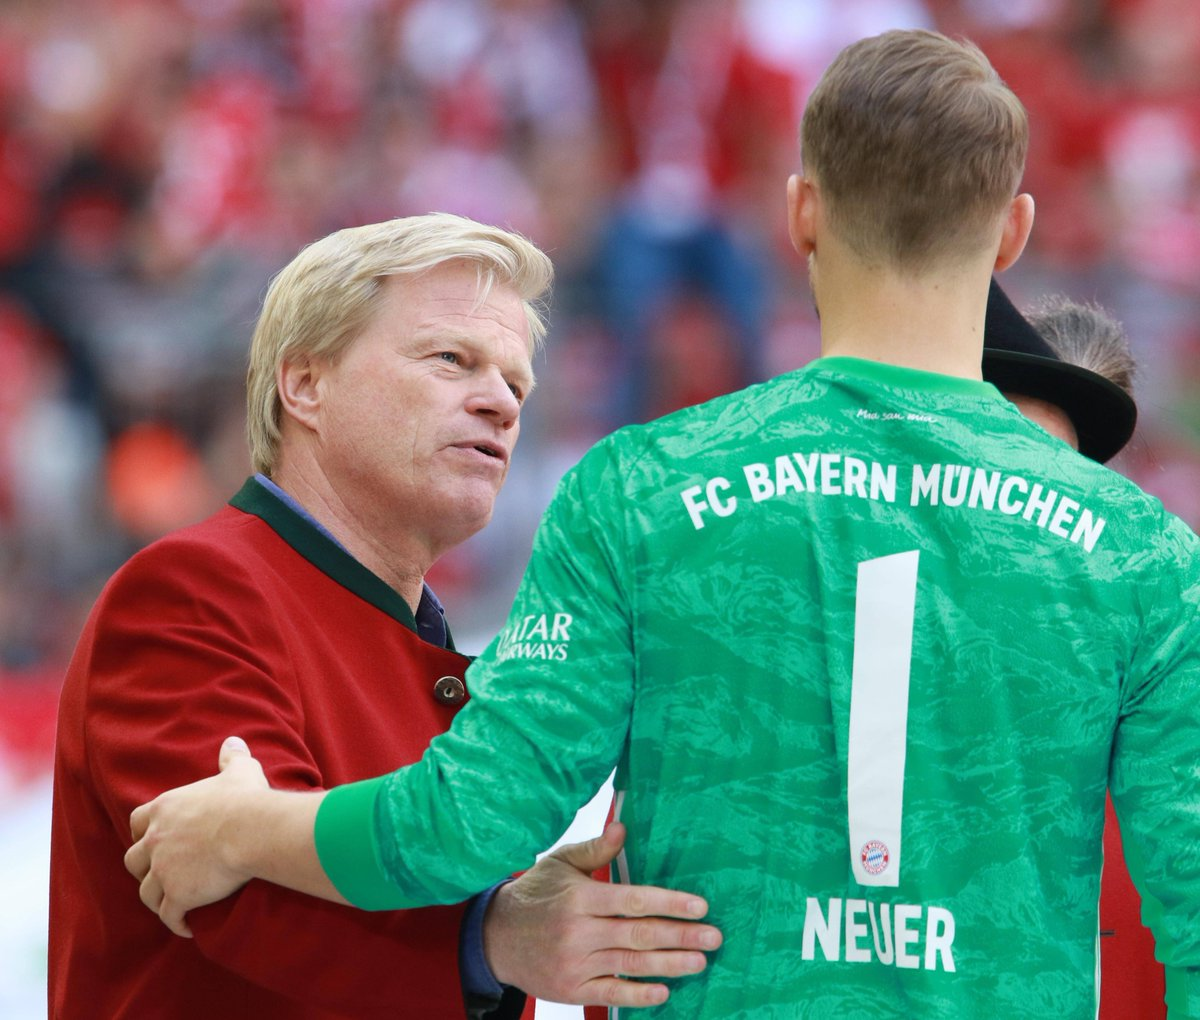 Another big decision for a successful future! @Manuel_Neuer is the captain and one of the most important pillars of our team. He embodies great years of German football and we're happy to continue the way of @FCBayern together. This extension is a strong signal 👌🏼🖋️ #MiaSanMia https://t.co/JLnENhIt6i